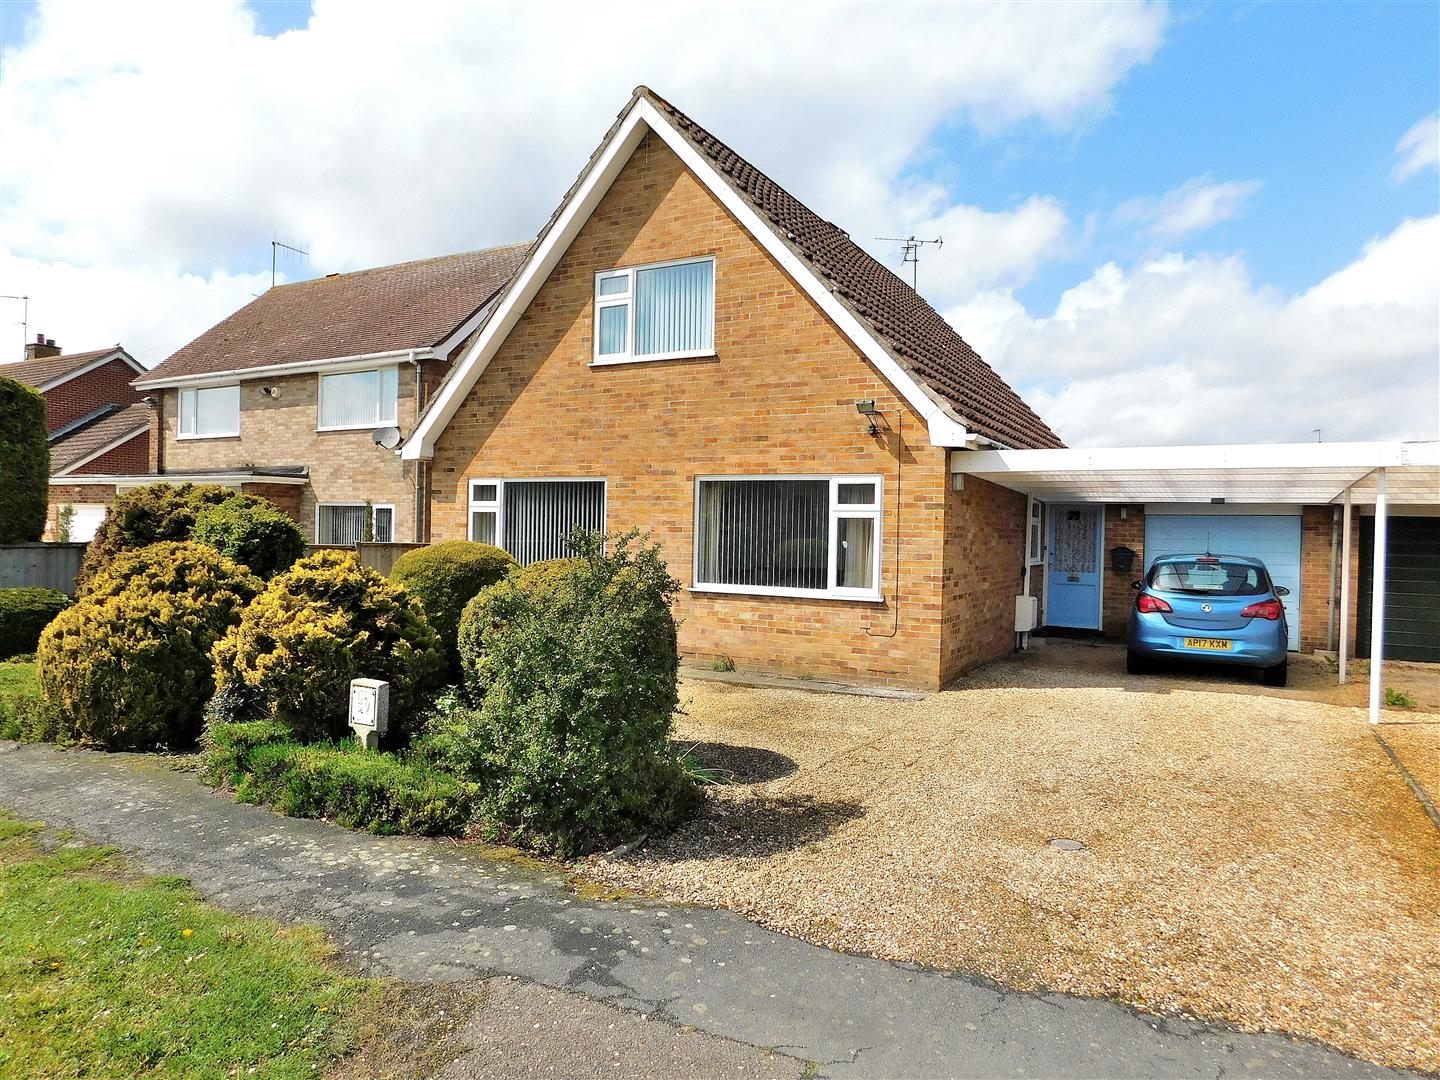 3 bed detached house for sale in Fir Tree Drive, King's Lynn  - Property Image 1